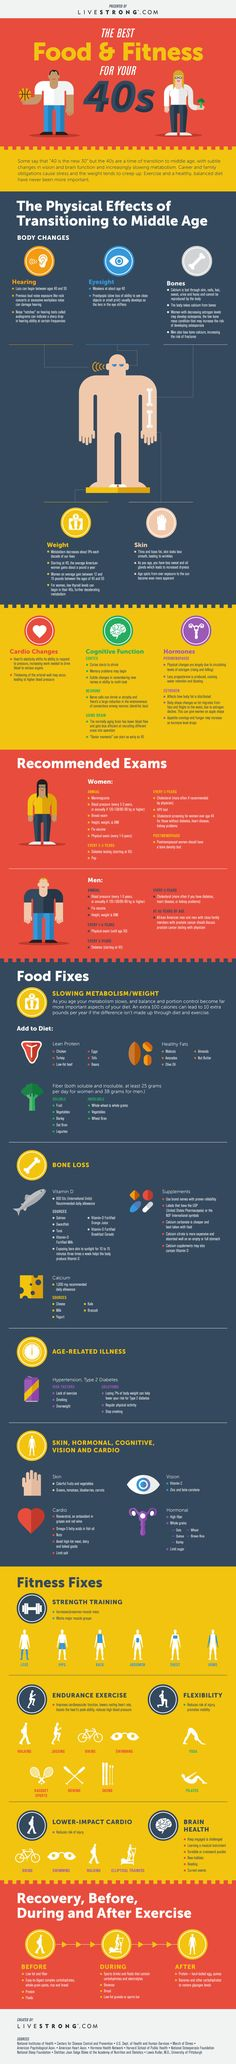 Eating and Exercise Tips for Your 40s (Infographic)